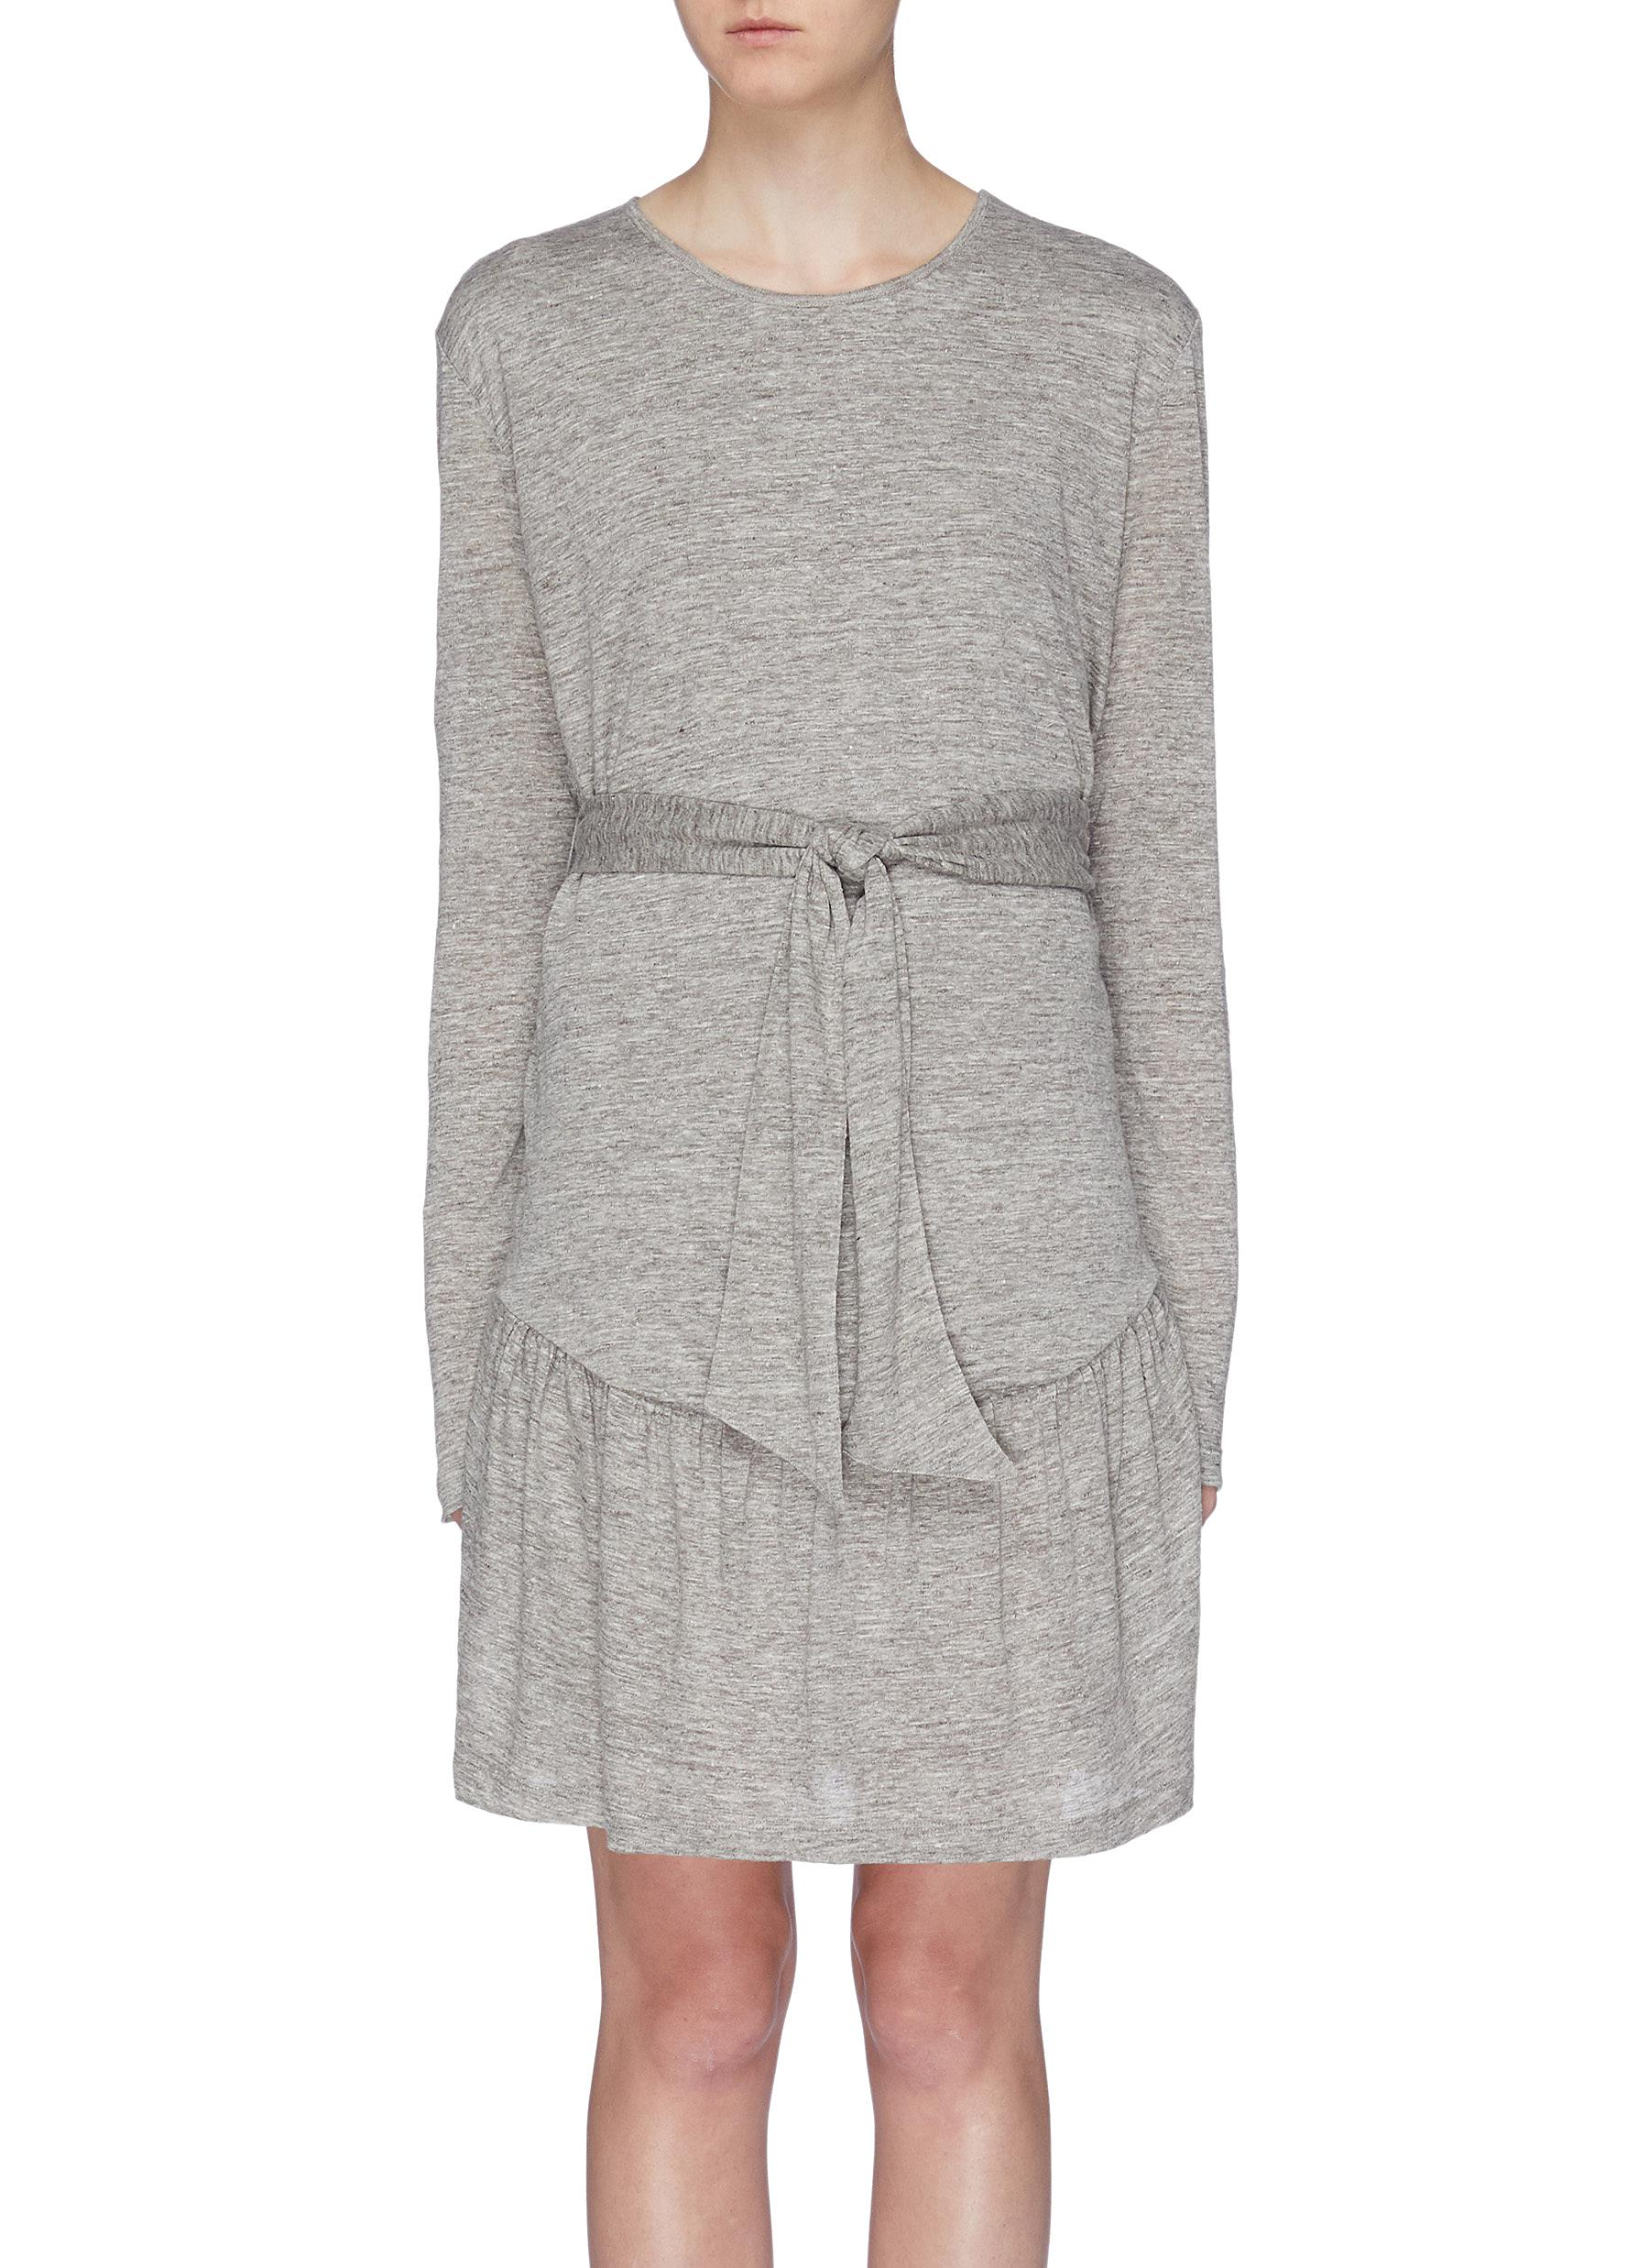 The Crystal belted ruched hem linen dress by Current/Elliott